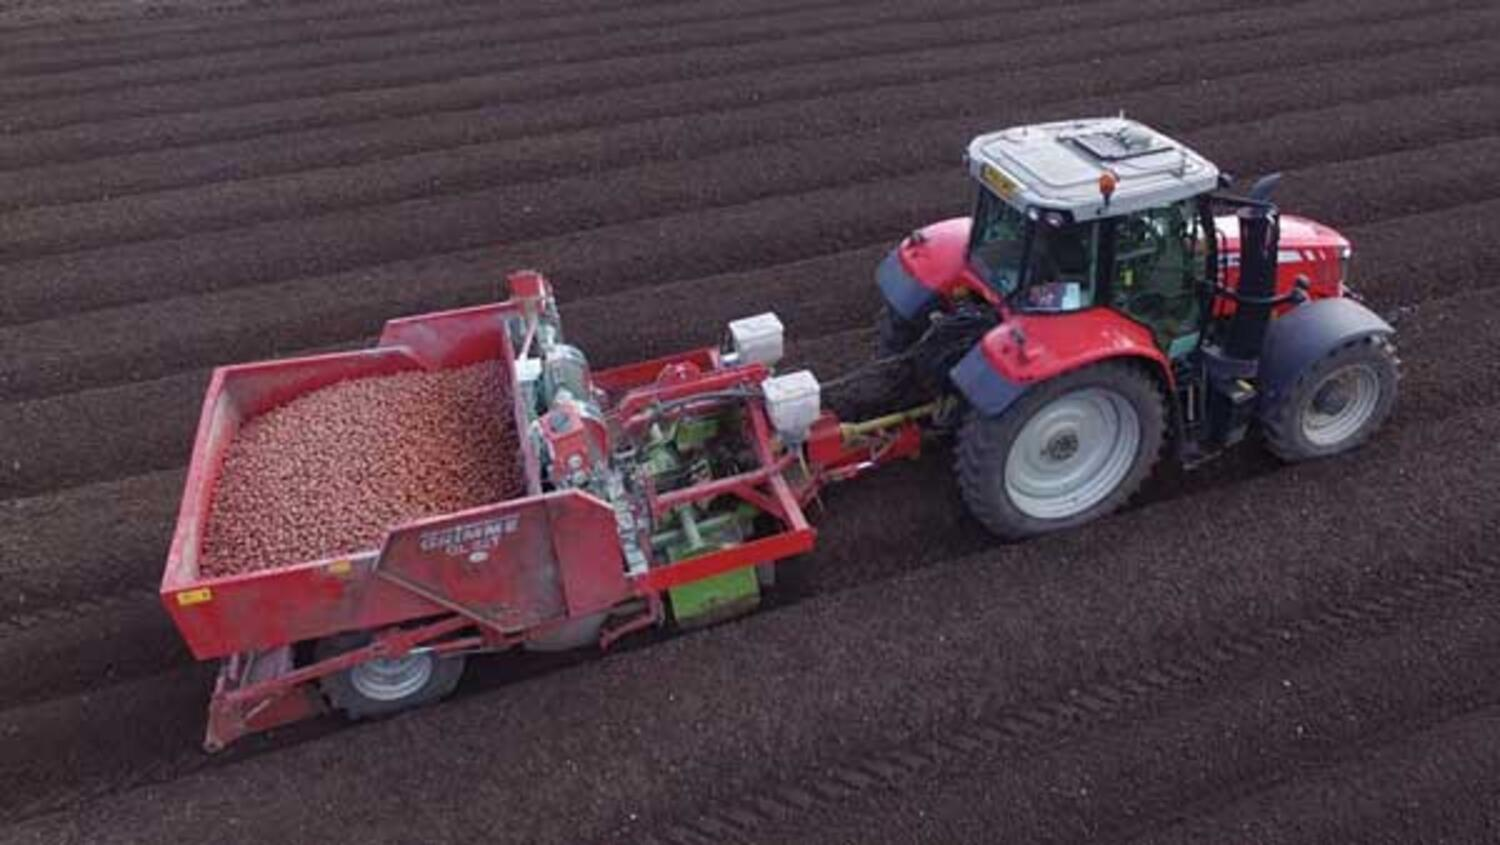 A drone's eye view of a root crop planter, pulled by a tractor as it works in the field